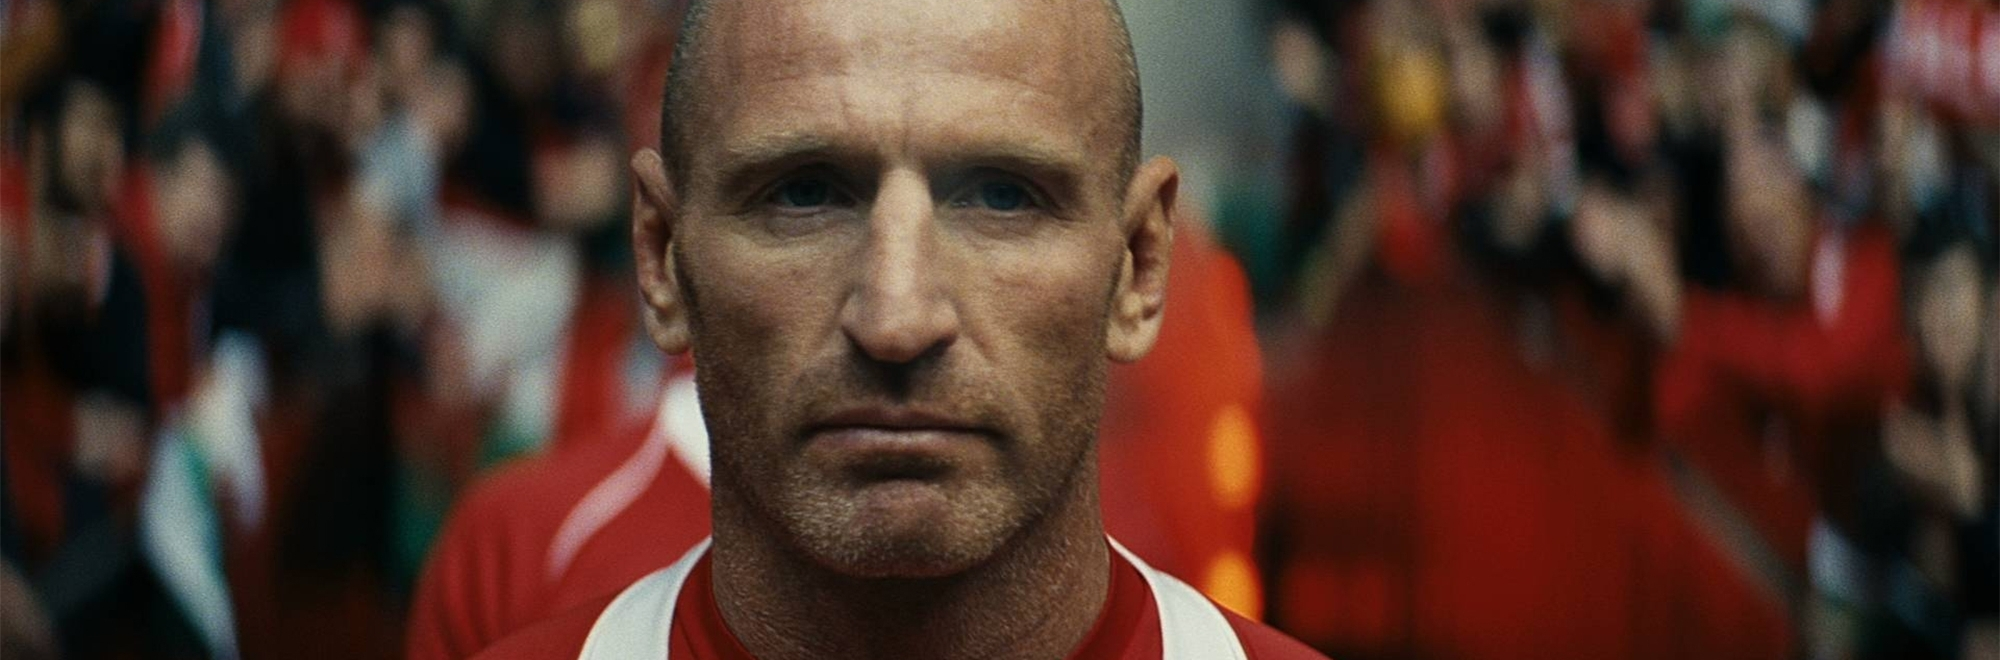 Now would be a great time for Guinness to build upon its ad, Never Alone, featuring rugby hero Gareth Thomas